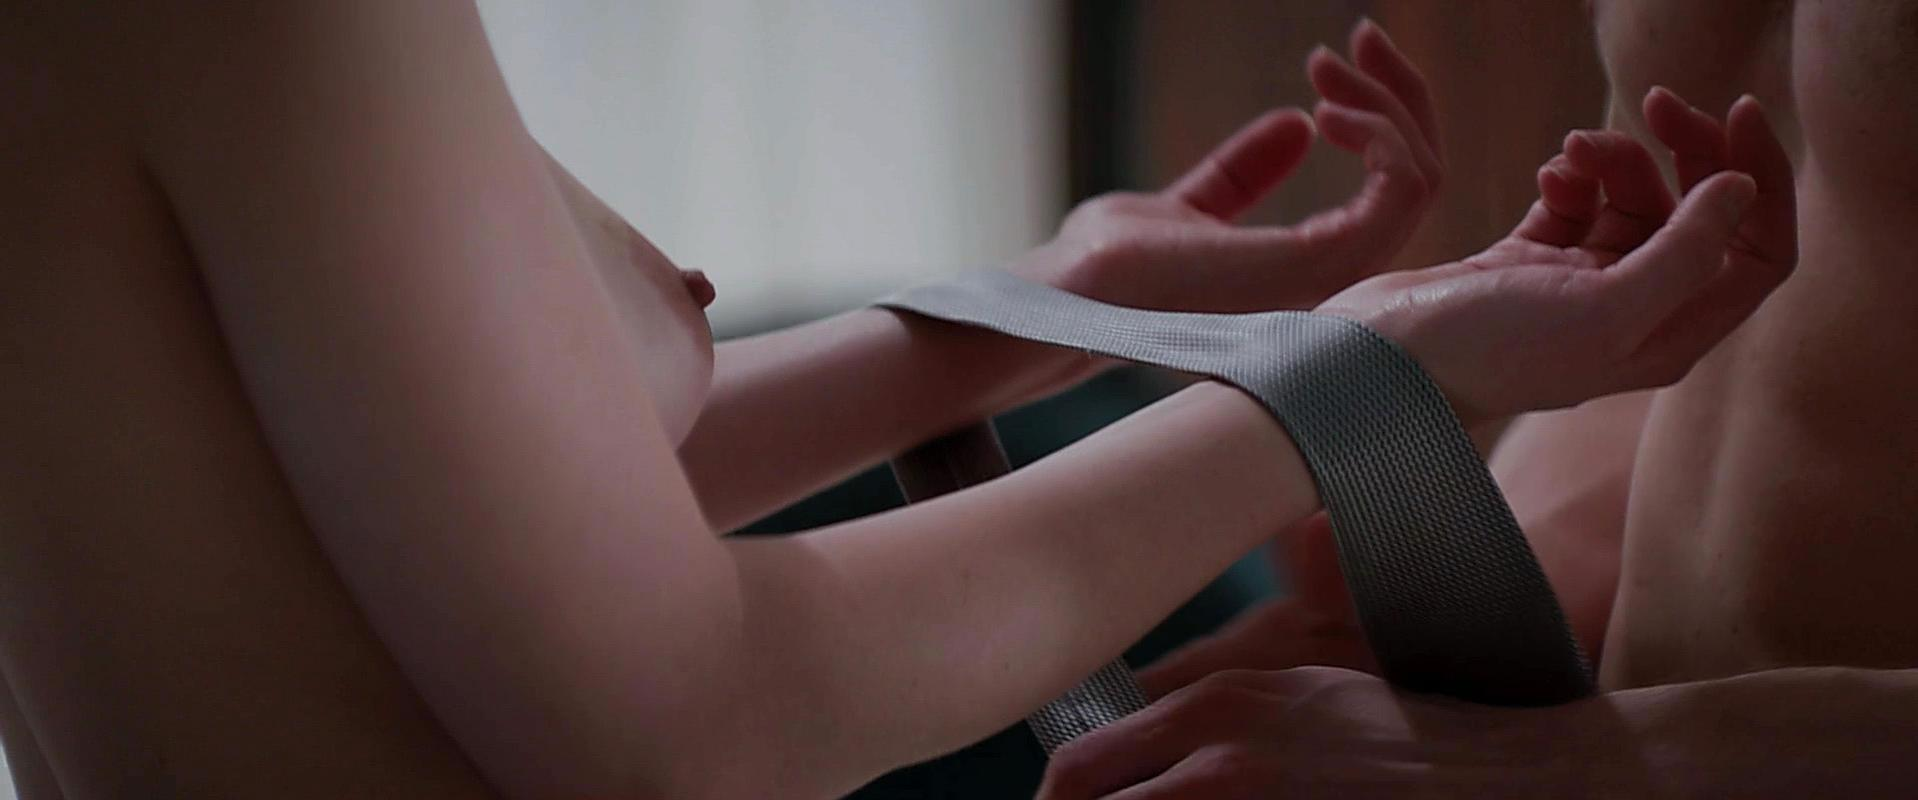 Dakota Johnson nude - Fifty Shades of Grey (2015)